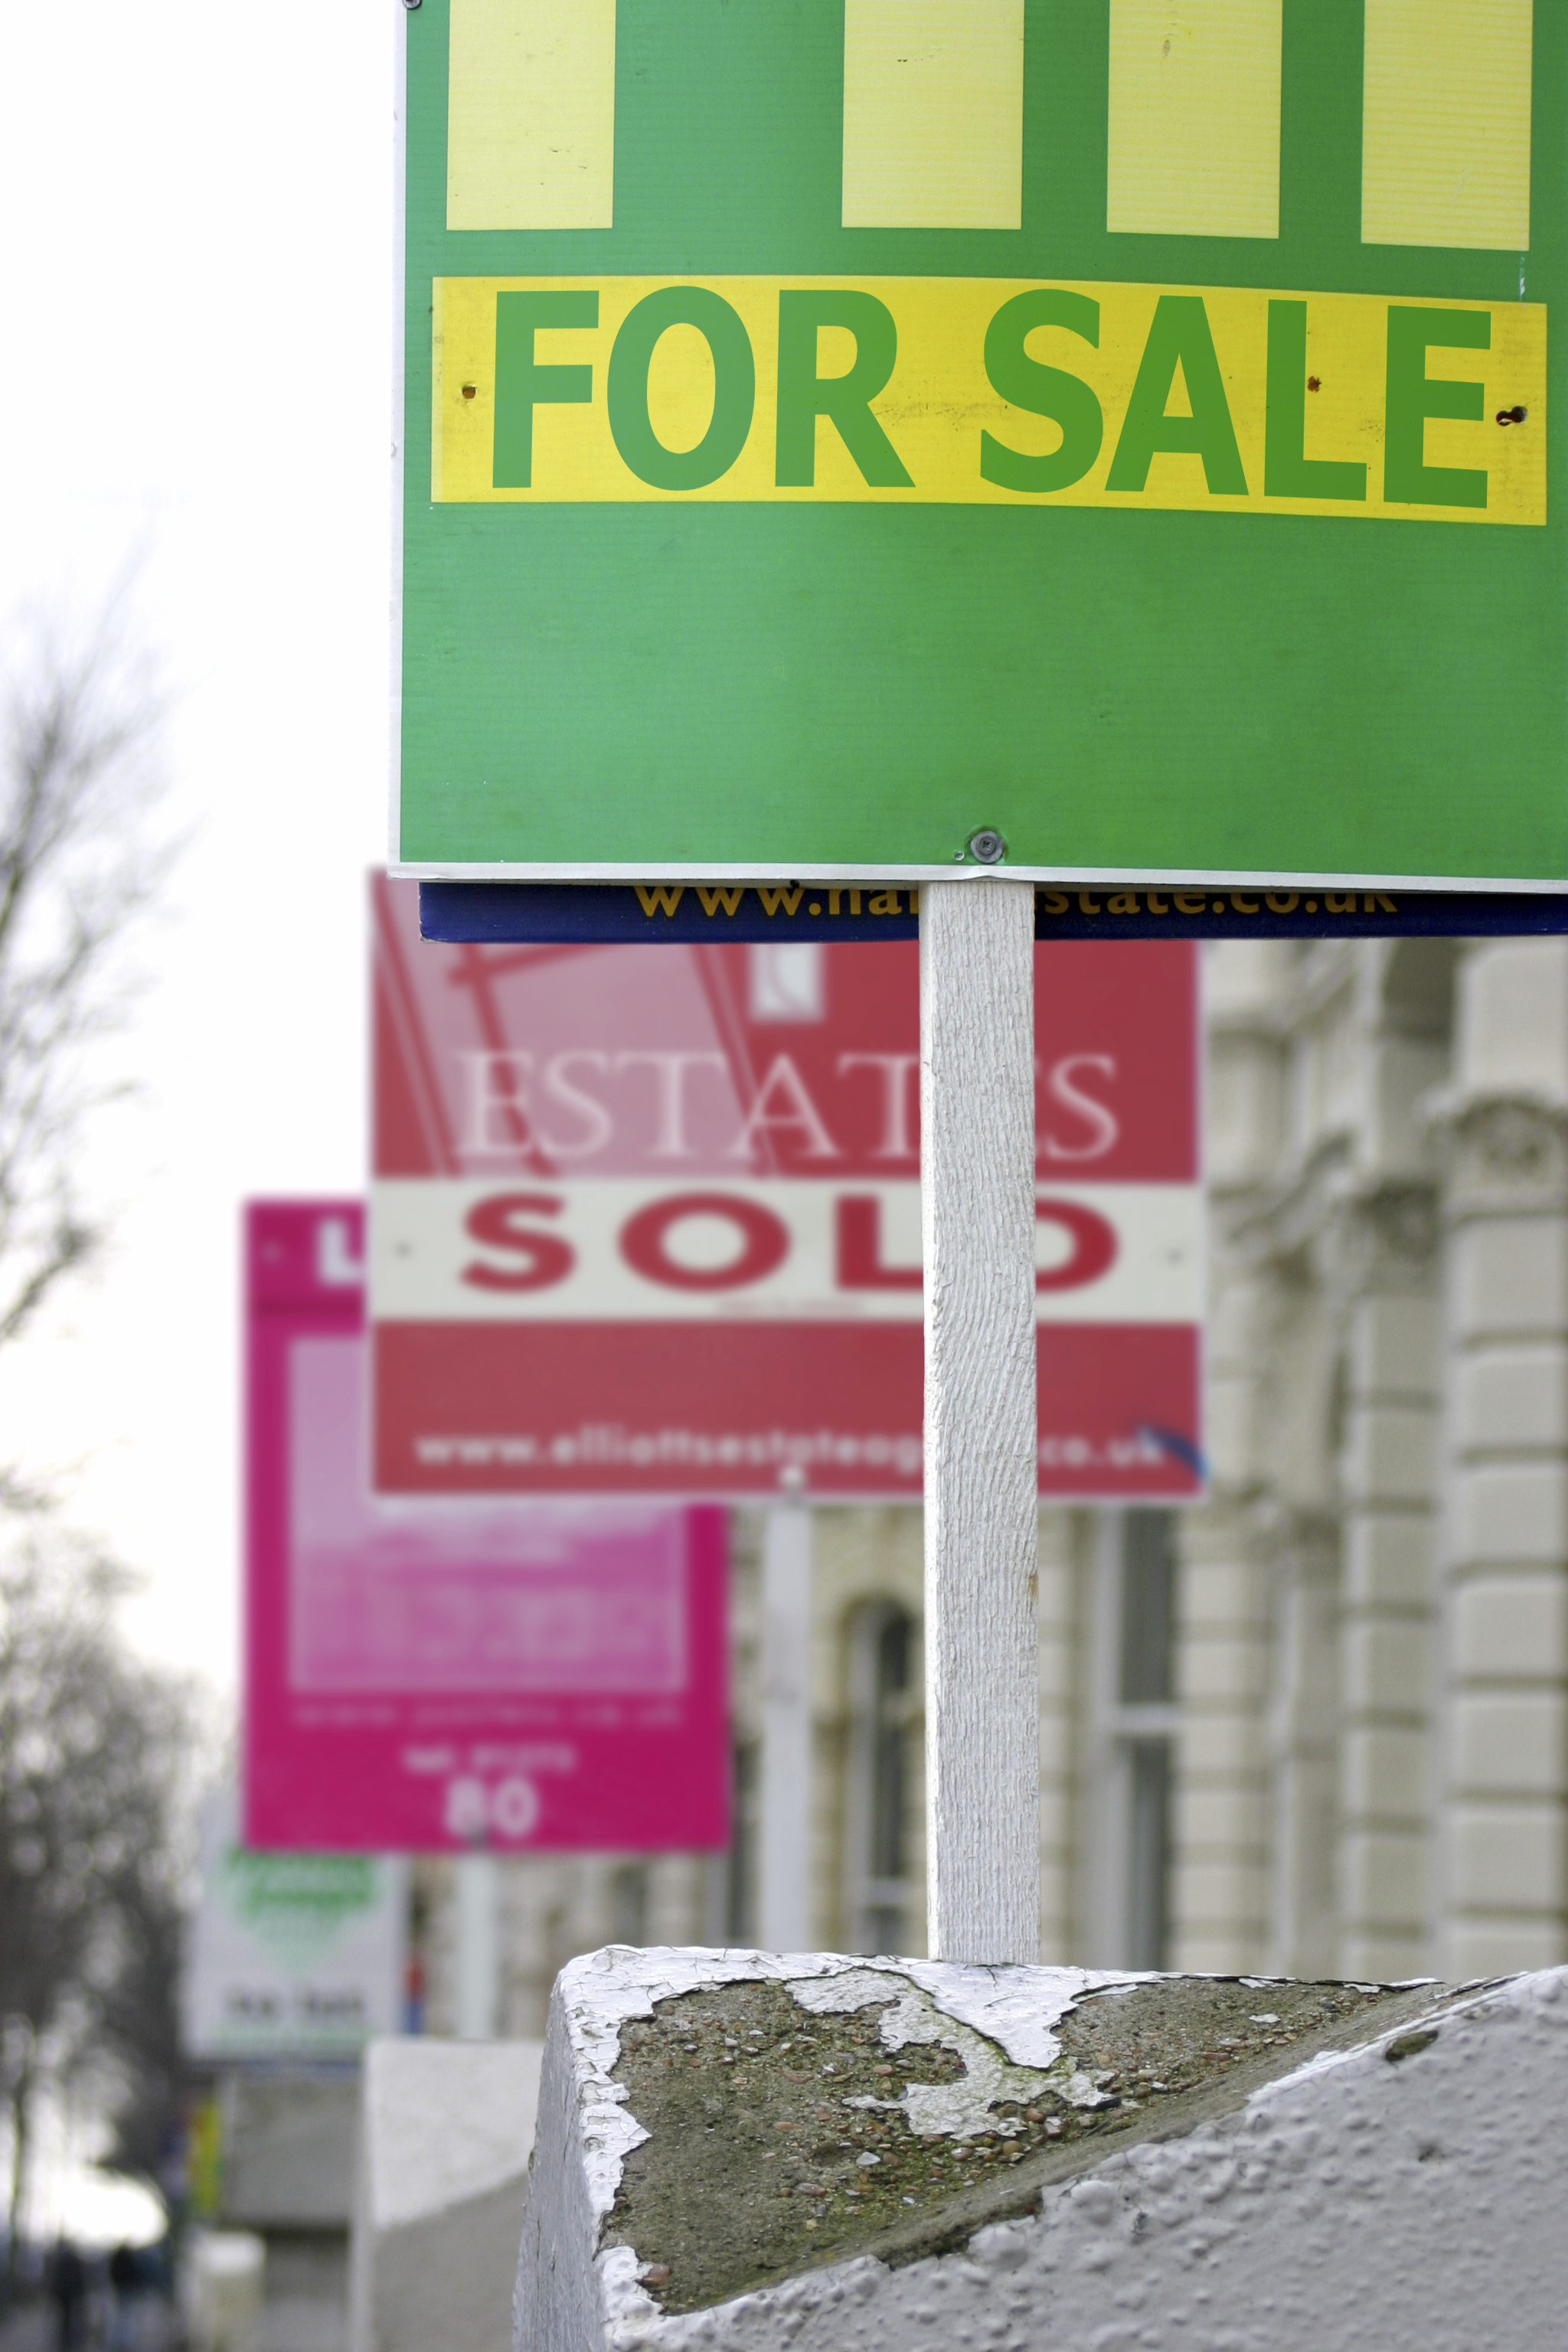 buy-to-let investors central housing group